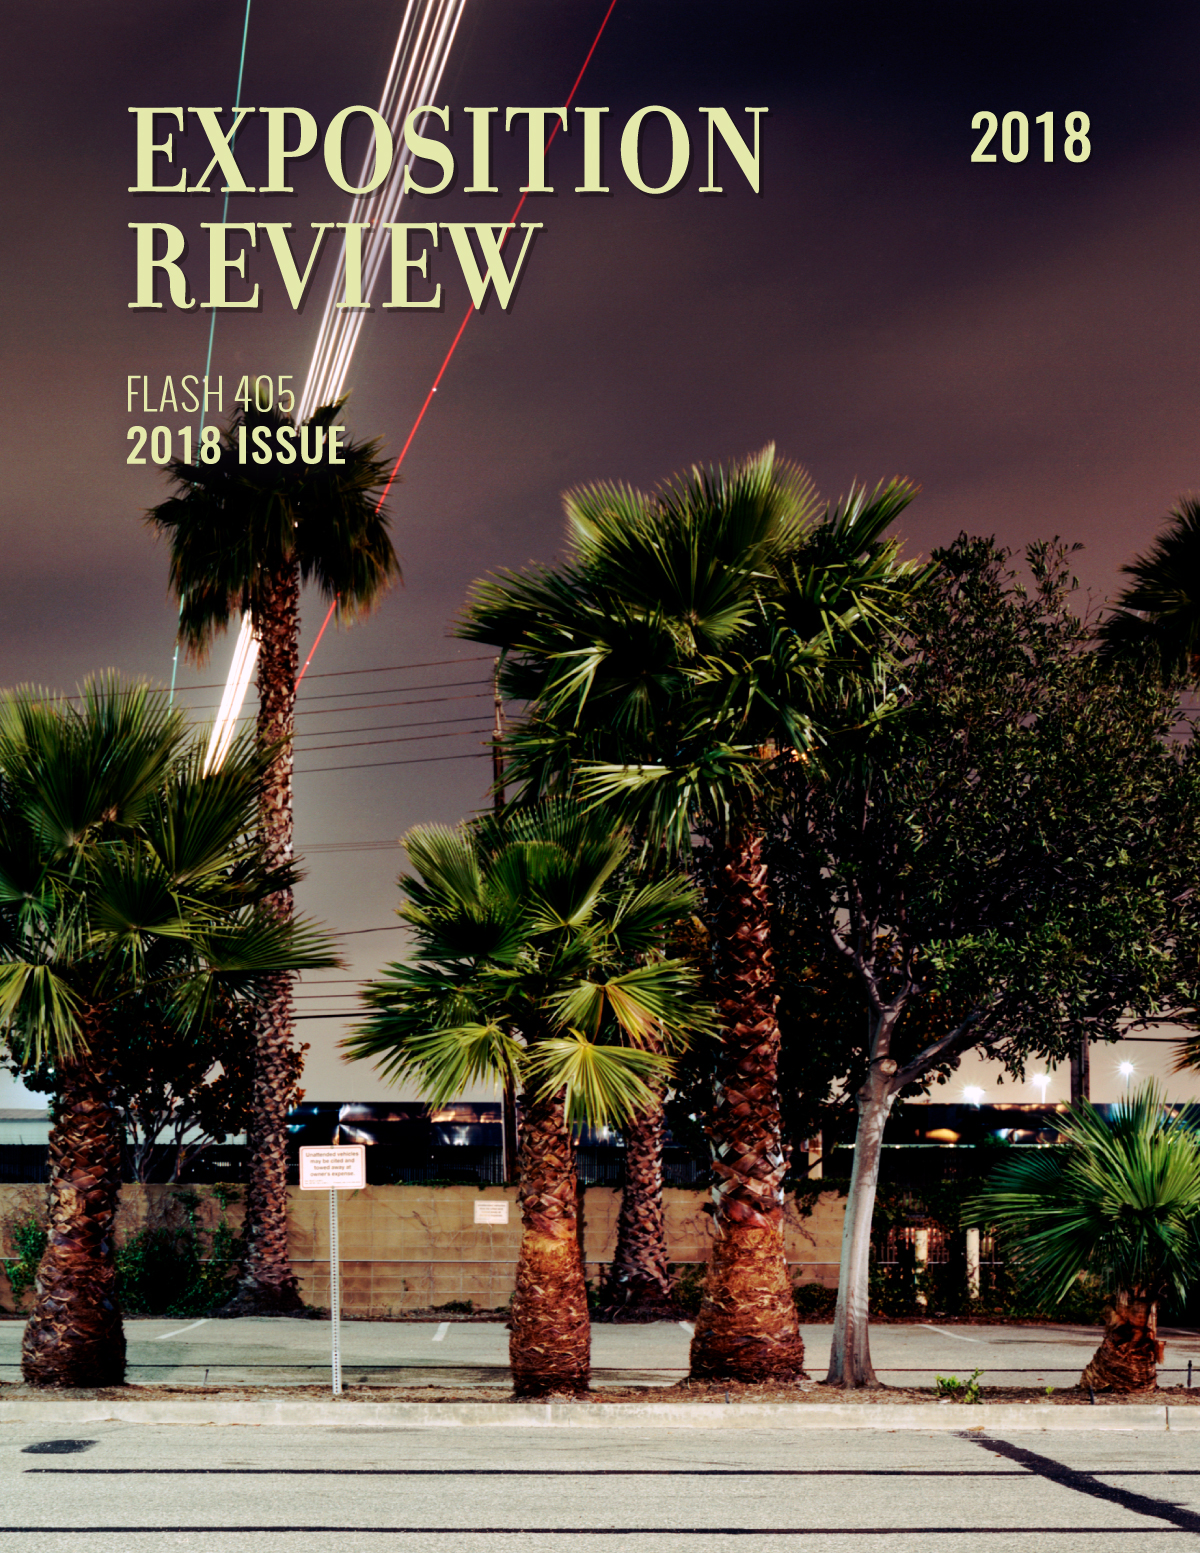 Exposition Review Flash 405 2018 Issue